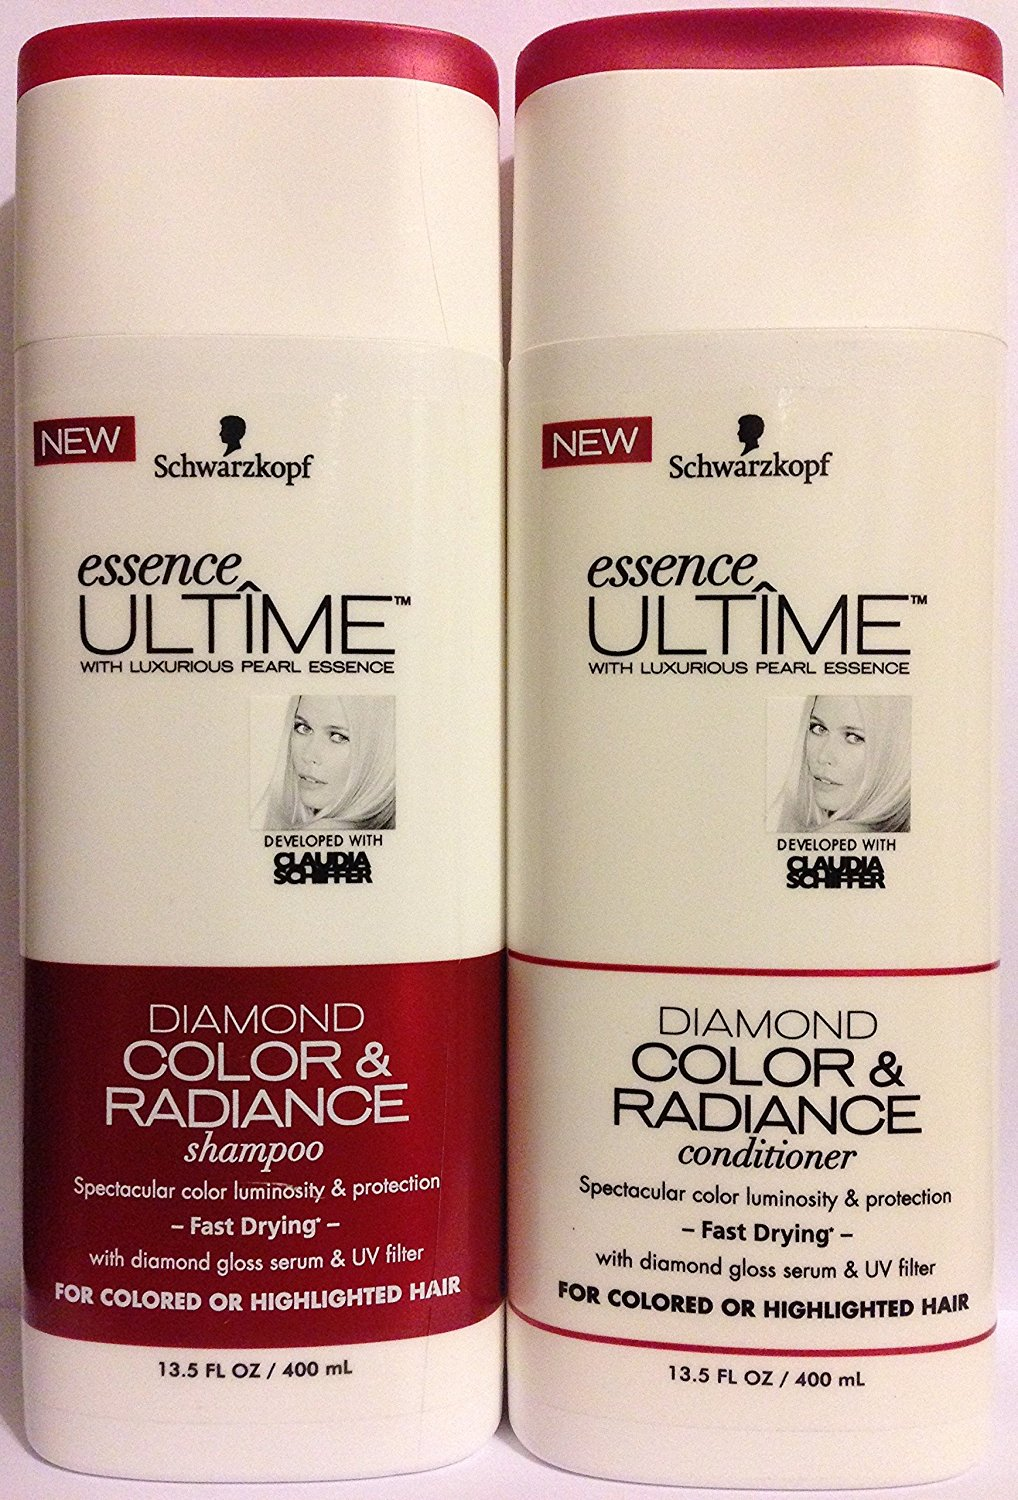 Schwarzkopf Essence Ultime Haircare - Diamond Color & Radiance - For Colored Or Highlighted Hair - Shampoo & Conditioner Set - Net Wt. 13.5 FL OZ (400 mL) Per Bottle - One Set